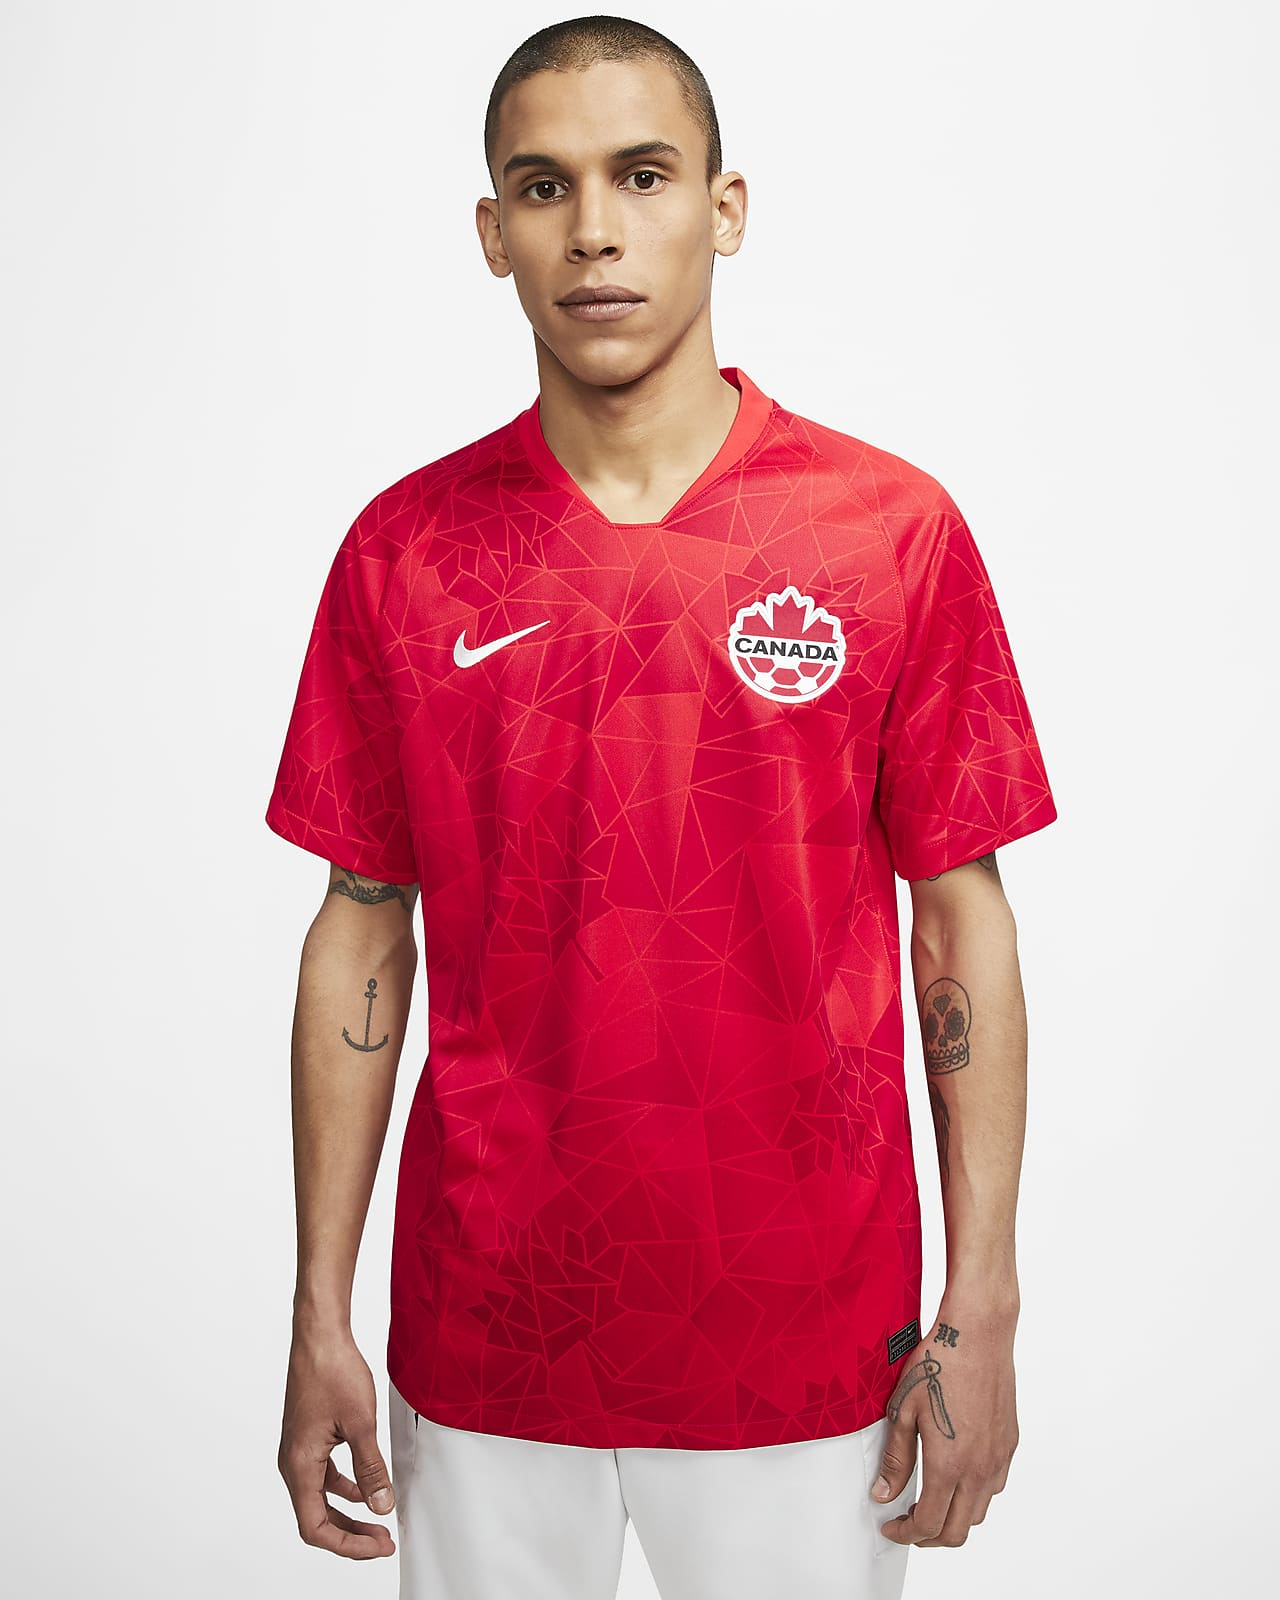 https://static.nike.com/a/images/t_PDP_1280_v1/f_auto,q_auto:eco/73dbb061-bad4-4cd0-80d3-f35807a01519/maillot-de-football-canada-2020-stadium-domicile-pour-r6VFlQ.jpg